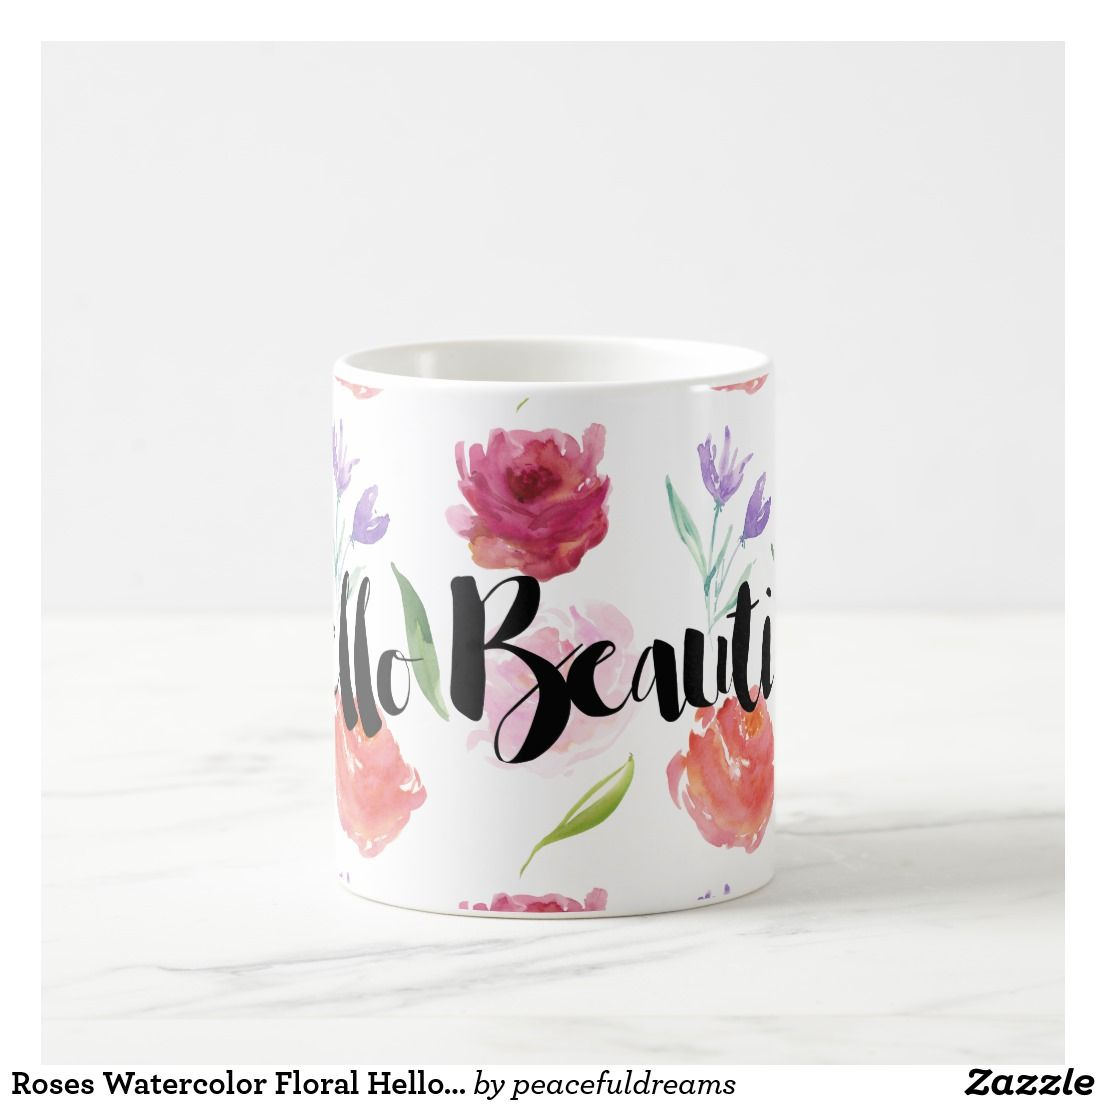 Roses Watercolor Floral Hello Beautiful Coffee Mug Zazzle Com Beautiful Coffee White Coffee Mugs Mugs